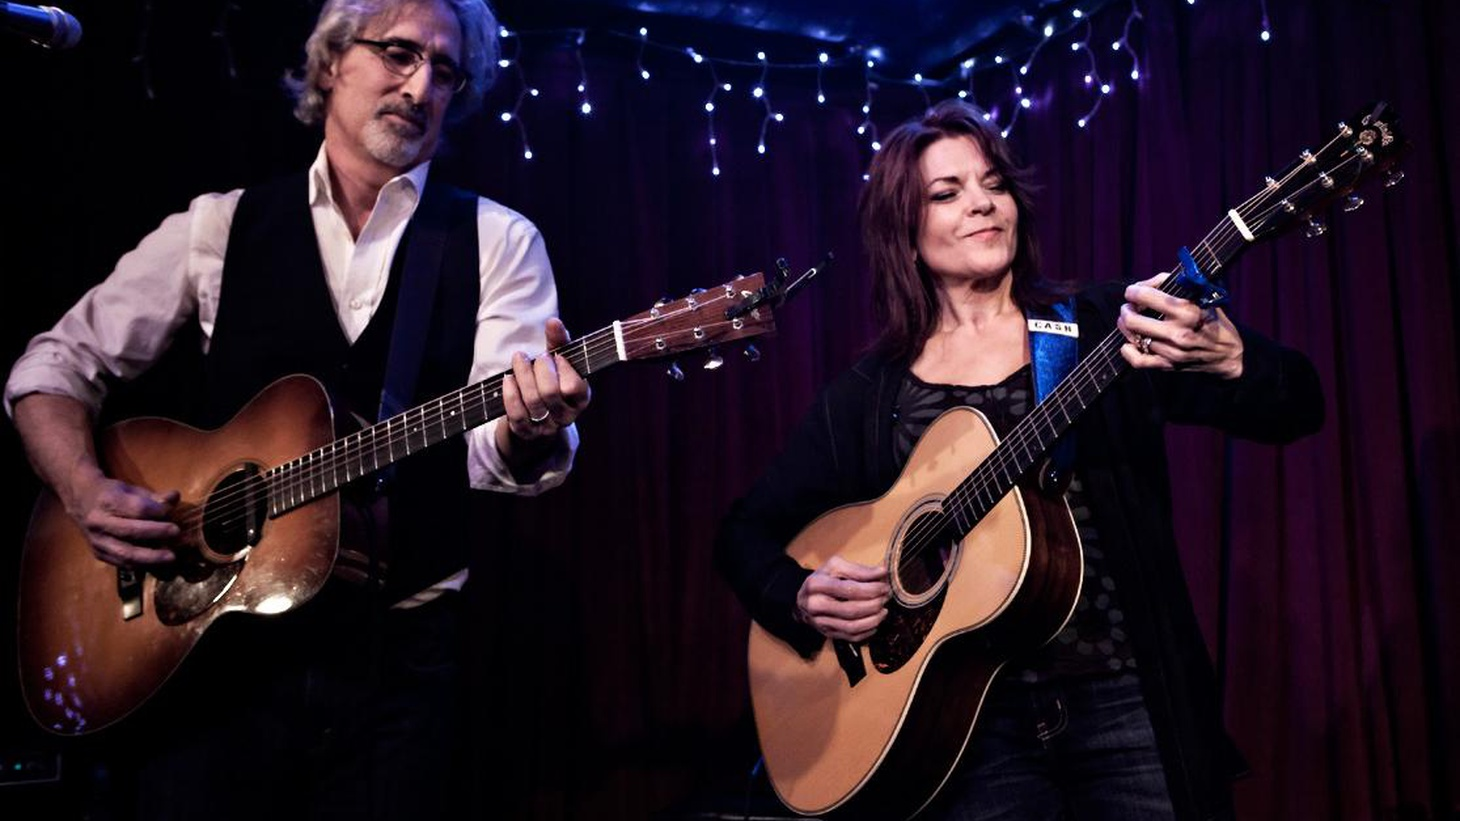 Grammy Award-winning artist Rosanne Cash performed songs from her poetic new album, The River & The Thread, for an intimate audience at KCRW's Apogee Sessions.